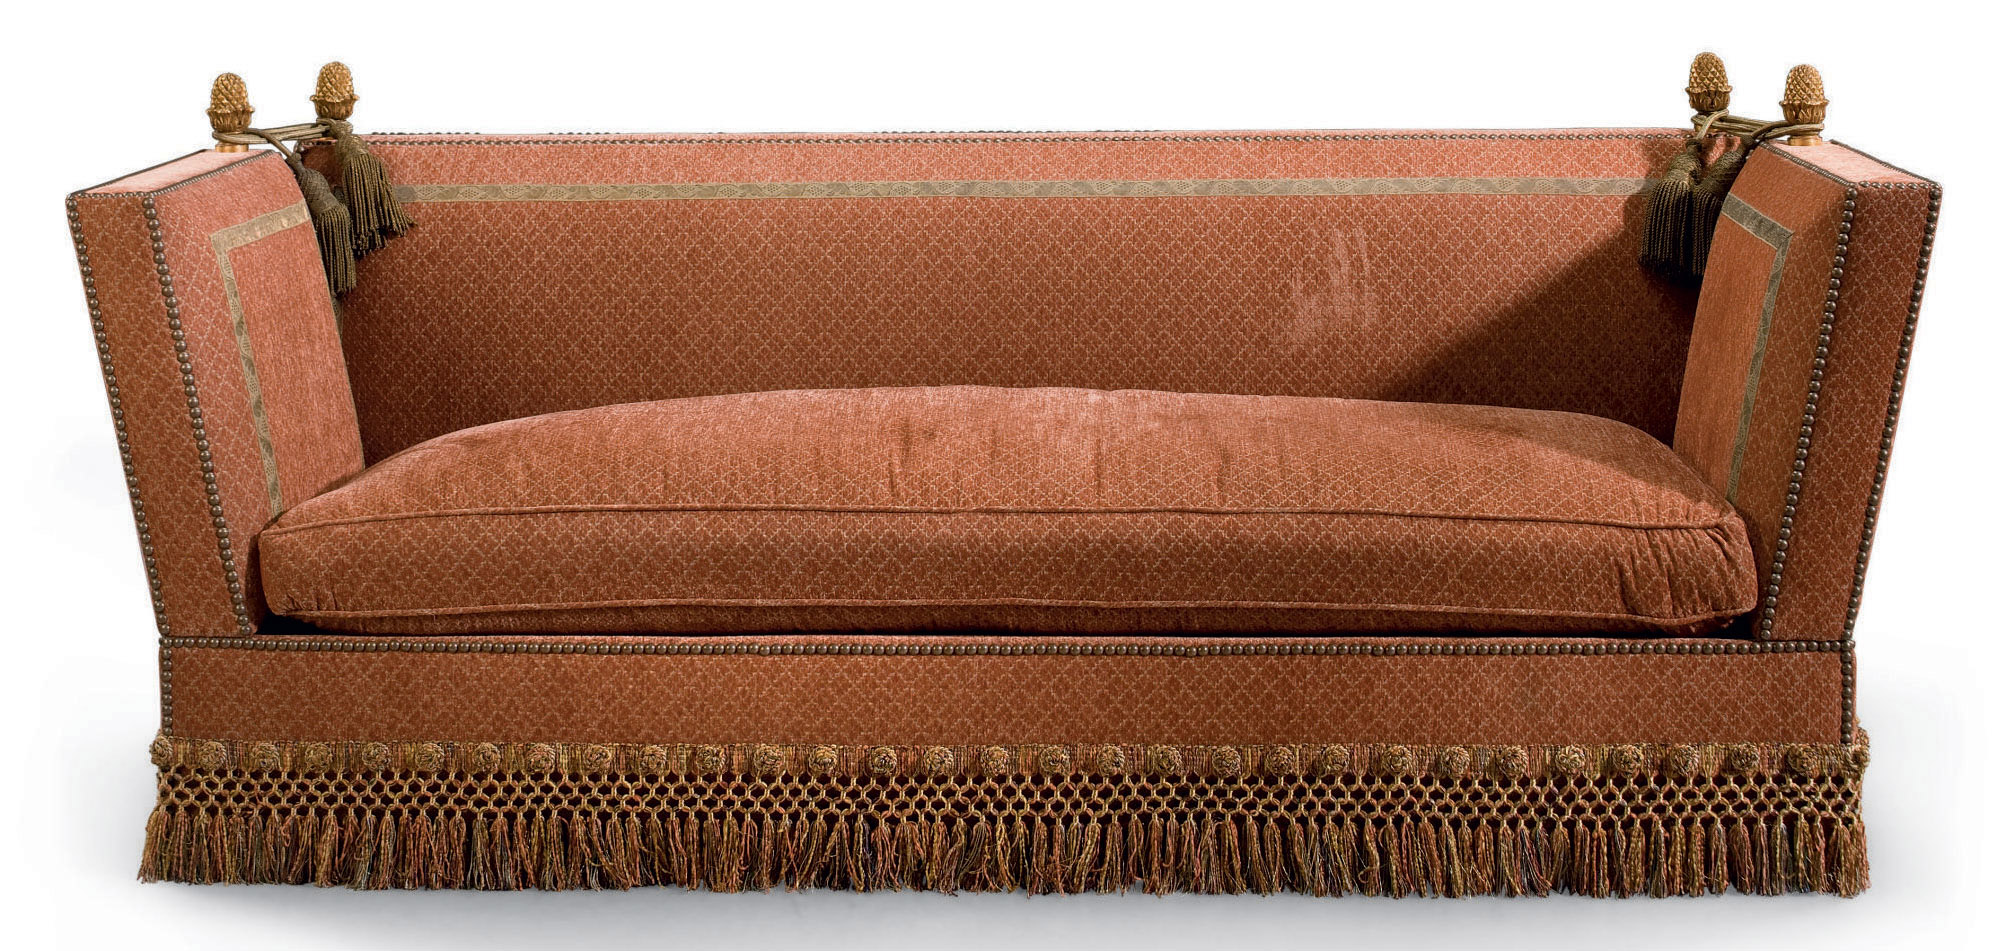 A UPHOLSTERED 'KNOLE' SOFA